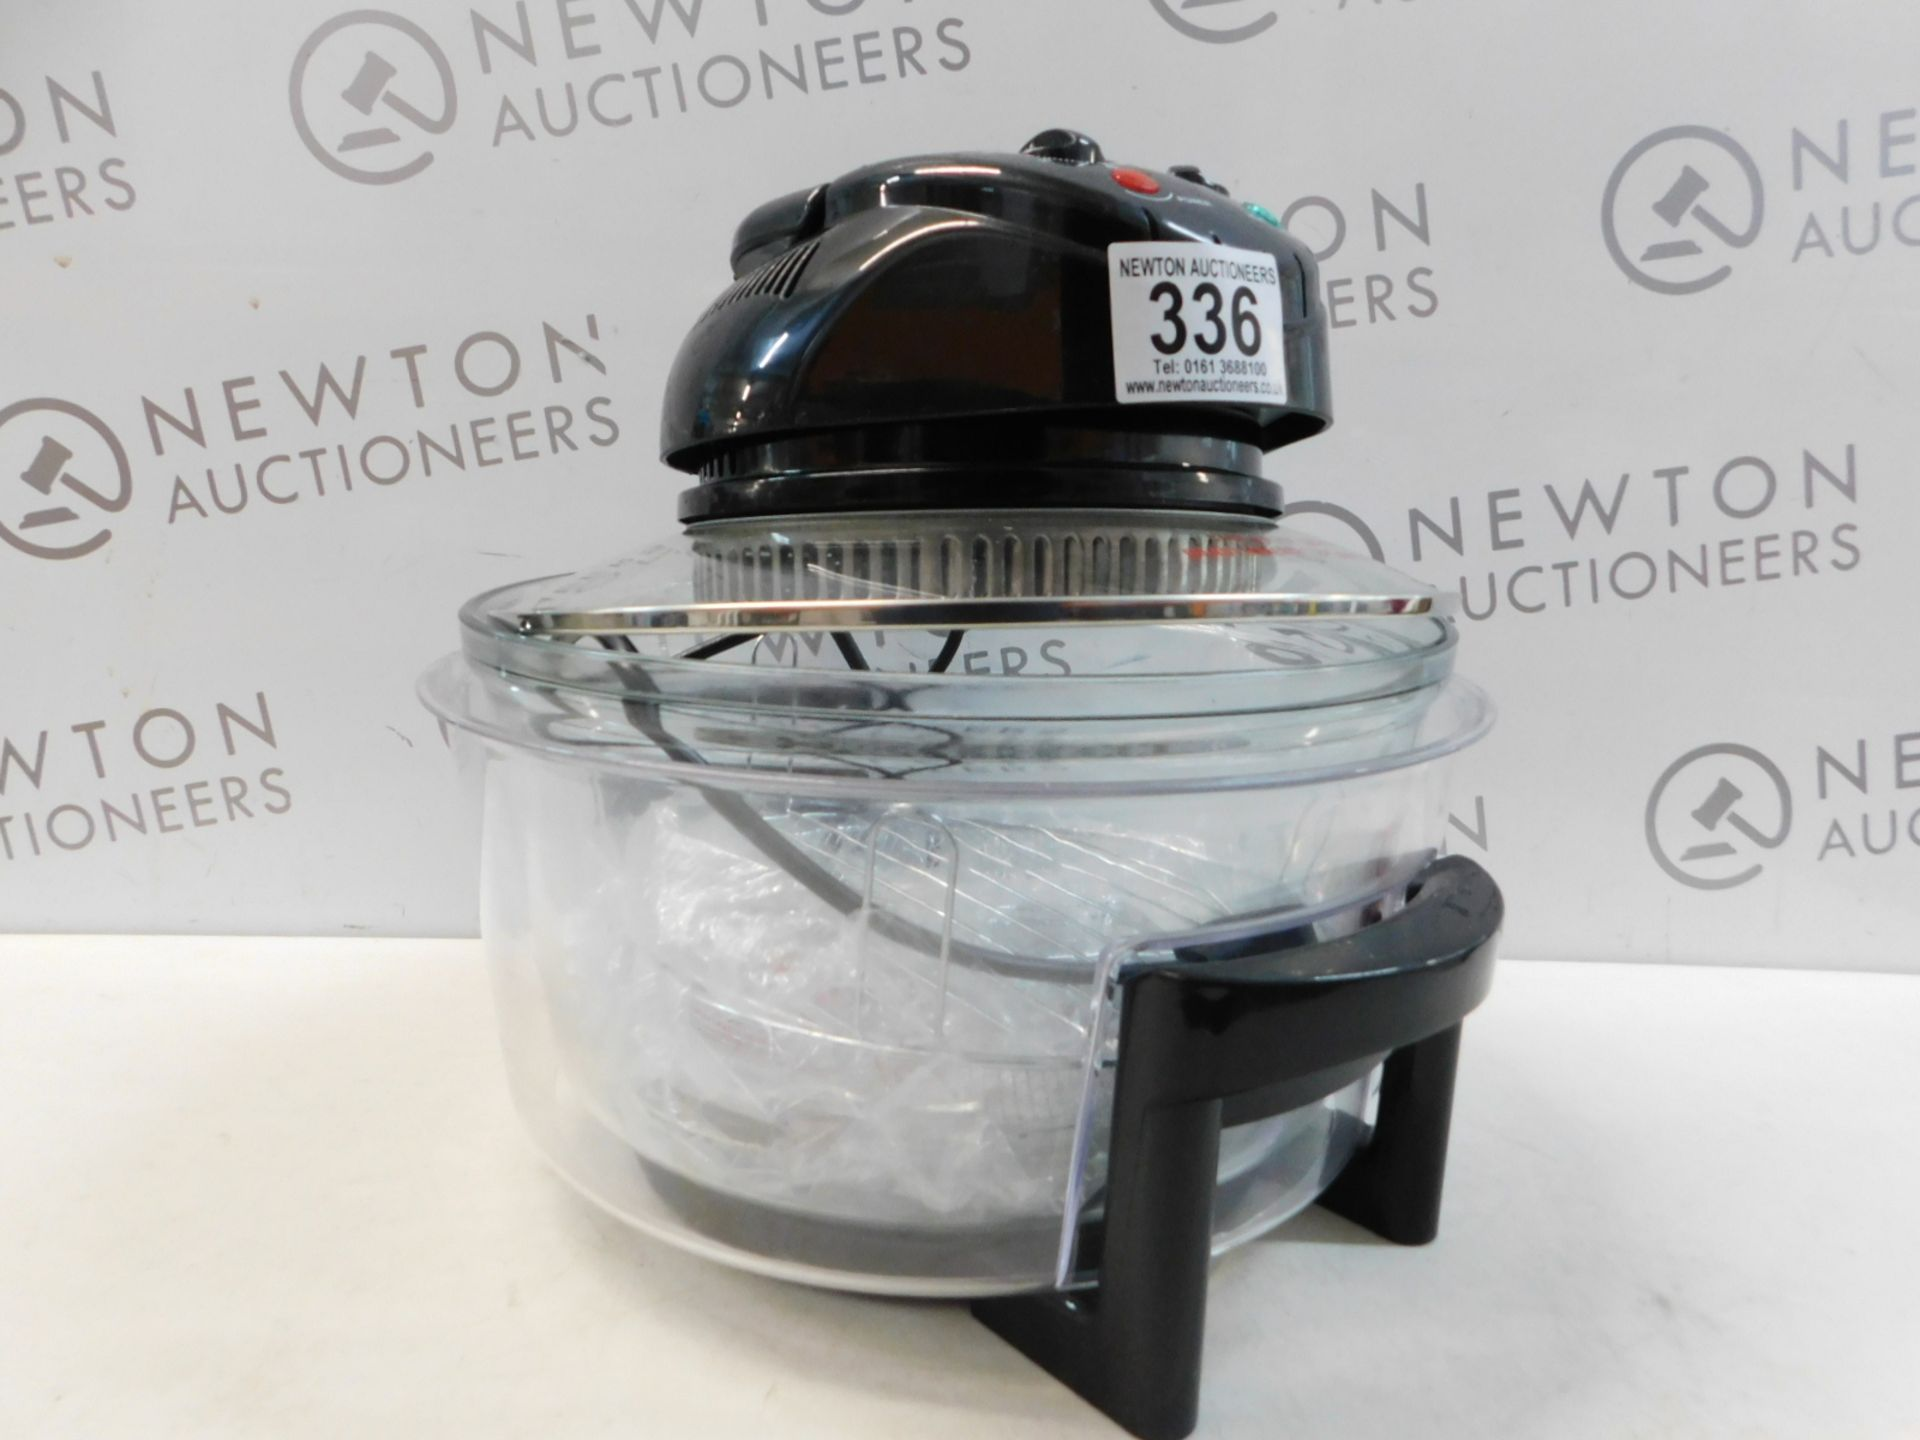 Lot 336 - 2 VISICOOK HALO CHEF HALOGEN COOKERS RRP £89.99